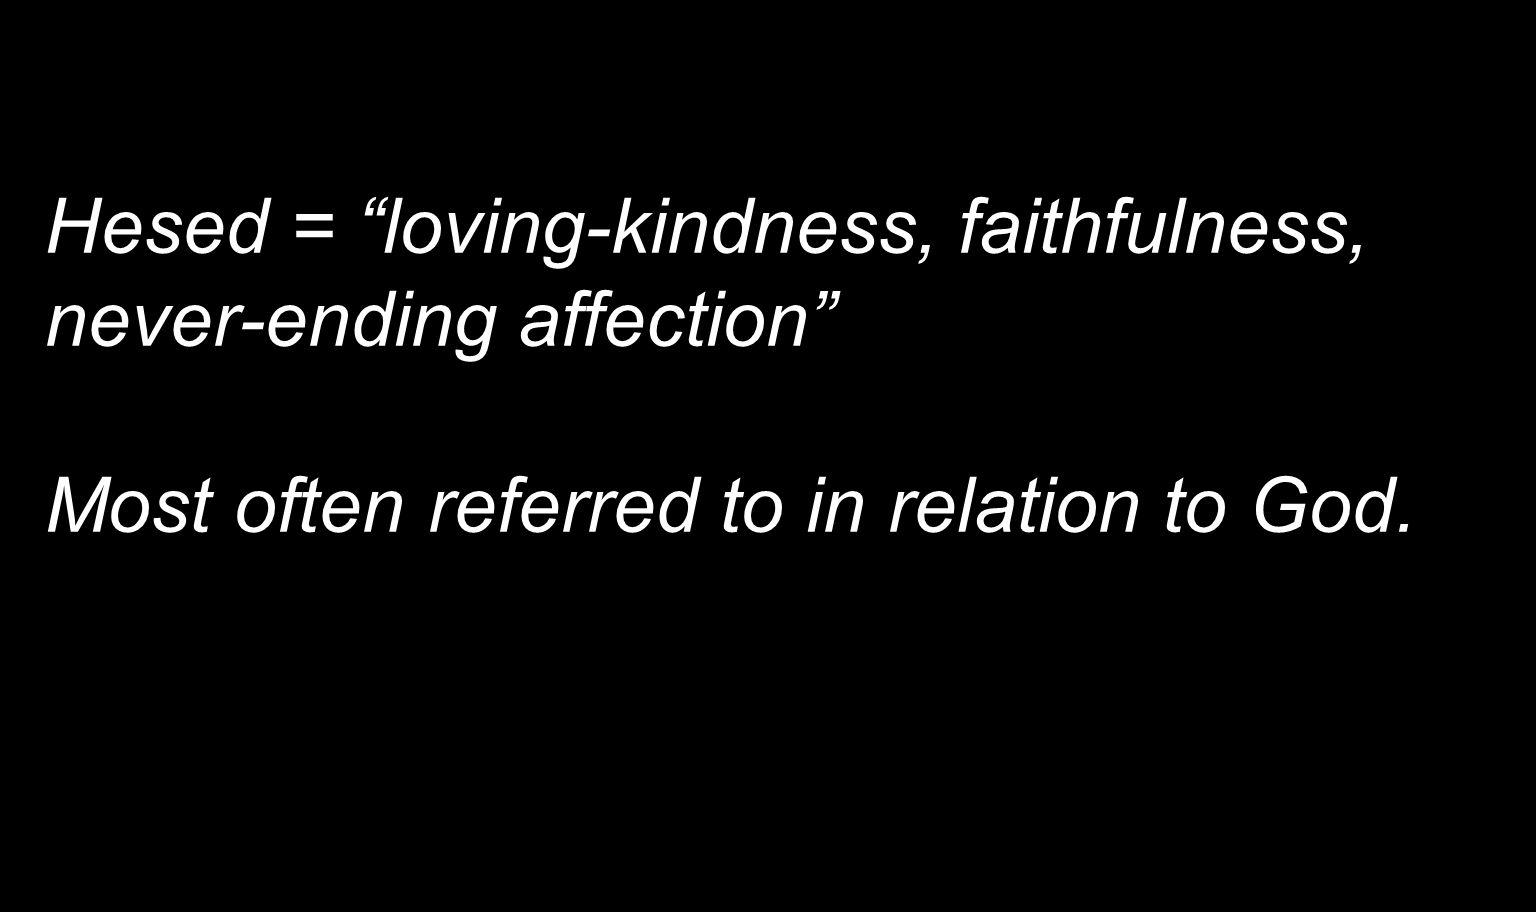 Hesed = loving-kindness, faithfulness, never-ending affection Most often referred to in relation to God.